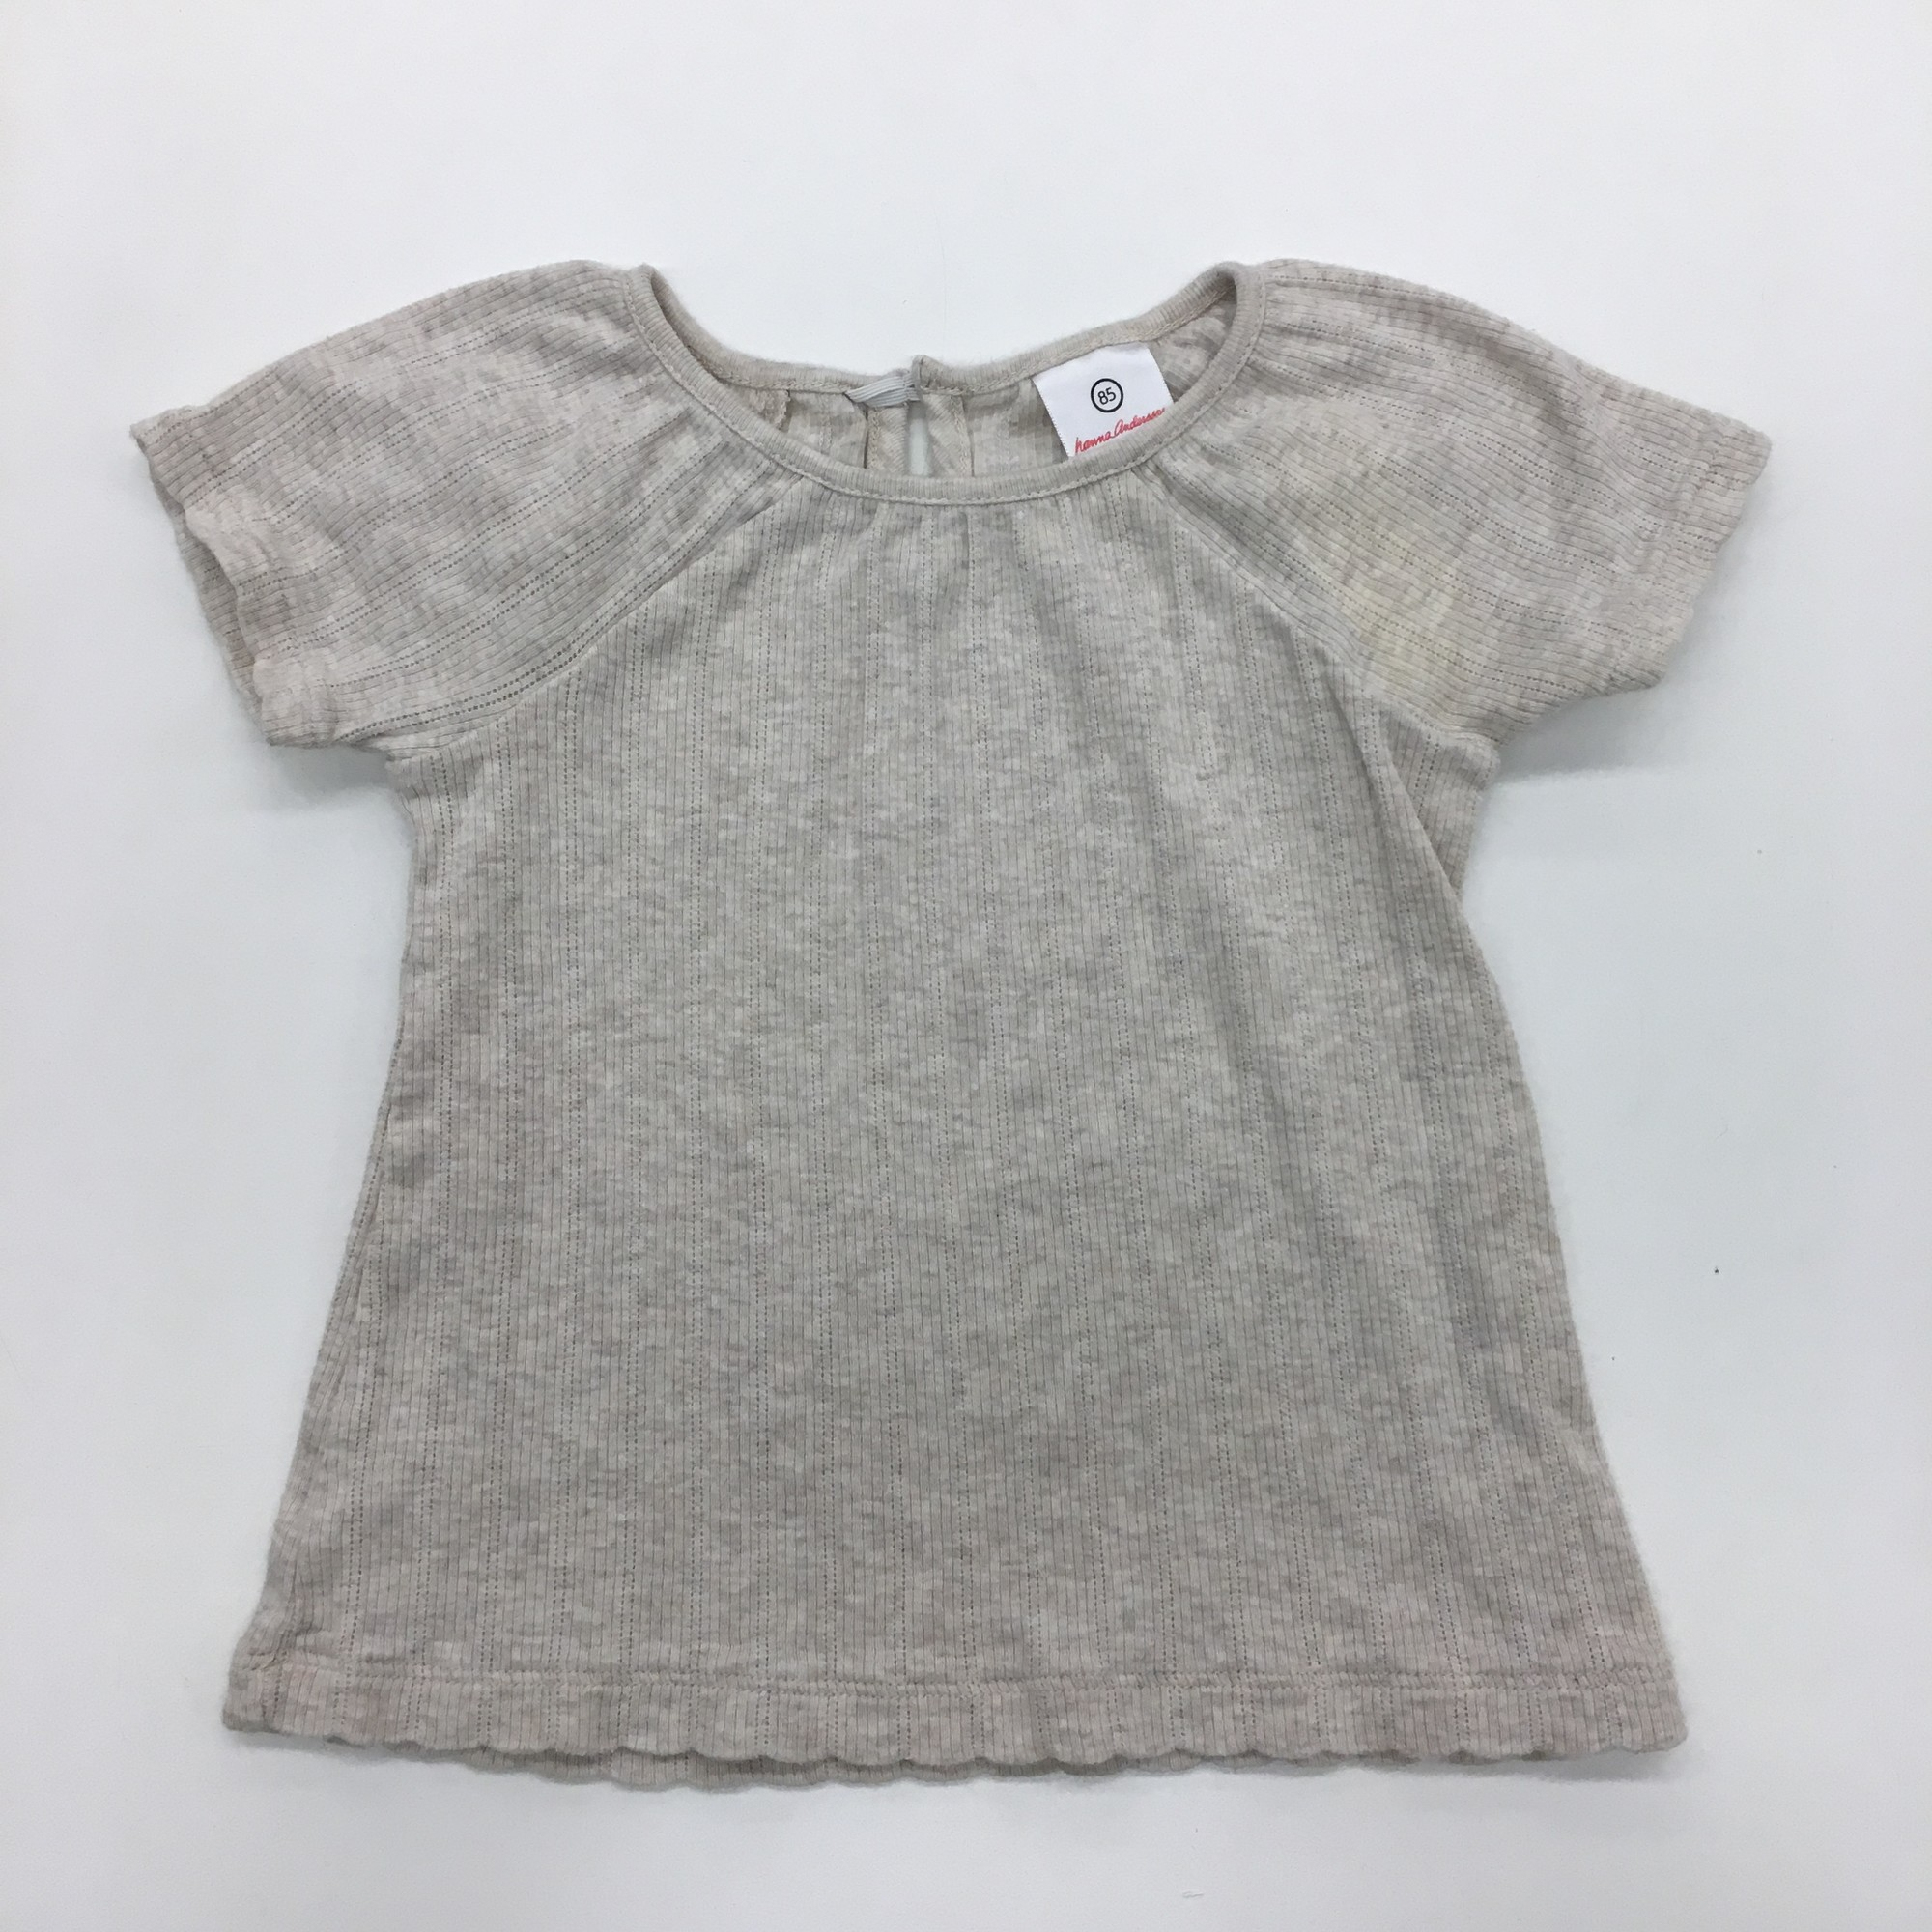 Size: 2t (Kids)<br /> Brand: Hanna Andersson<br /> $6.99<br /> <br /> Cross posted, items are located at #PipsqueakResaleBoutique, payments accepted: cash, paypal & credit cards. Any flaws will be described in the comments. More pictures available with link above. Local pick up available at the #VancouverMall, tax will be added (not included in price), shipping available (not included in price), item can be placed on hold with communication, message with any questions. Join Pipsqueak Resale - Online to see all the new items! Follow us on IG @pipsqueakresale & Thanks for looking!<br /> <br /> Due to the nature of consignment, any known flaws will be described; ALL SHIPPED SALES ARE FINAL. All items are currently located inside Pipsqueak Resale Boutique as a store front, items purchased on location before items are prepared for shipment will be refunded.<br /> <br /> #resalerocks #hannaandersson #pipsqueakresale #vancouverwa #portland #reusereducerecycle #fashiononabudget #chooseused #consignment #savemoney #shoplocal #weship #shoplocalonline #resale #resaleboutique #mommyandme #minime #fashion #reseller #pipsqueak_girls_size2t #girls_size2t #girls_size_2t